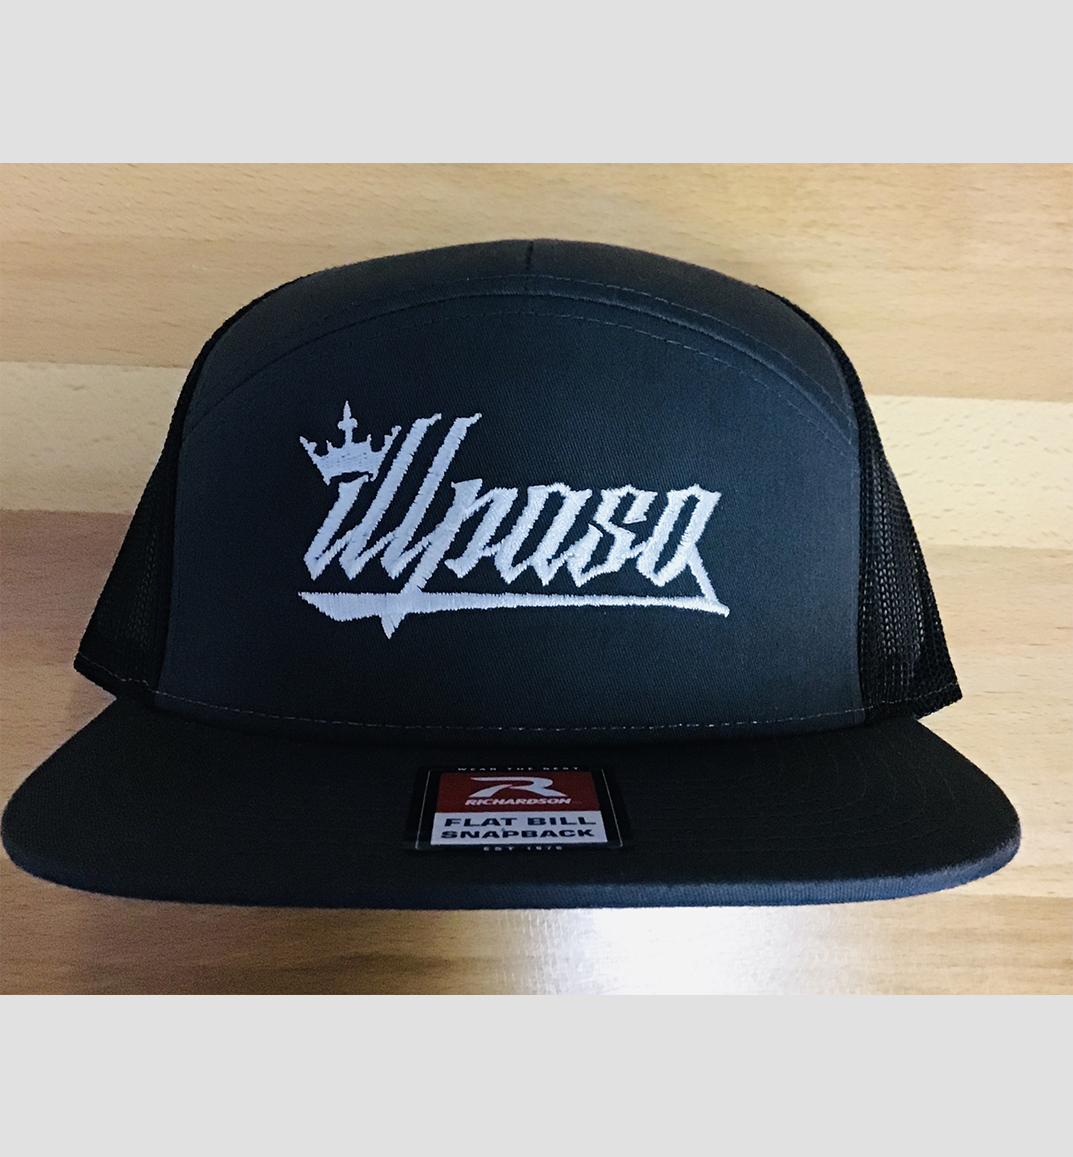 """Crown"" 7- Panel Trucker (Black) Unisex Cap"